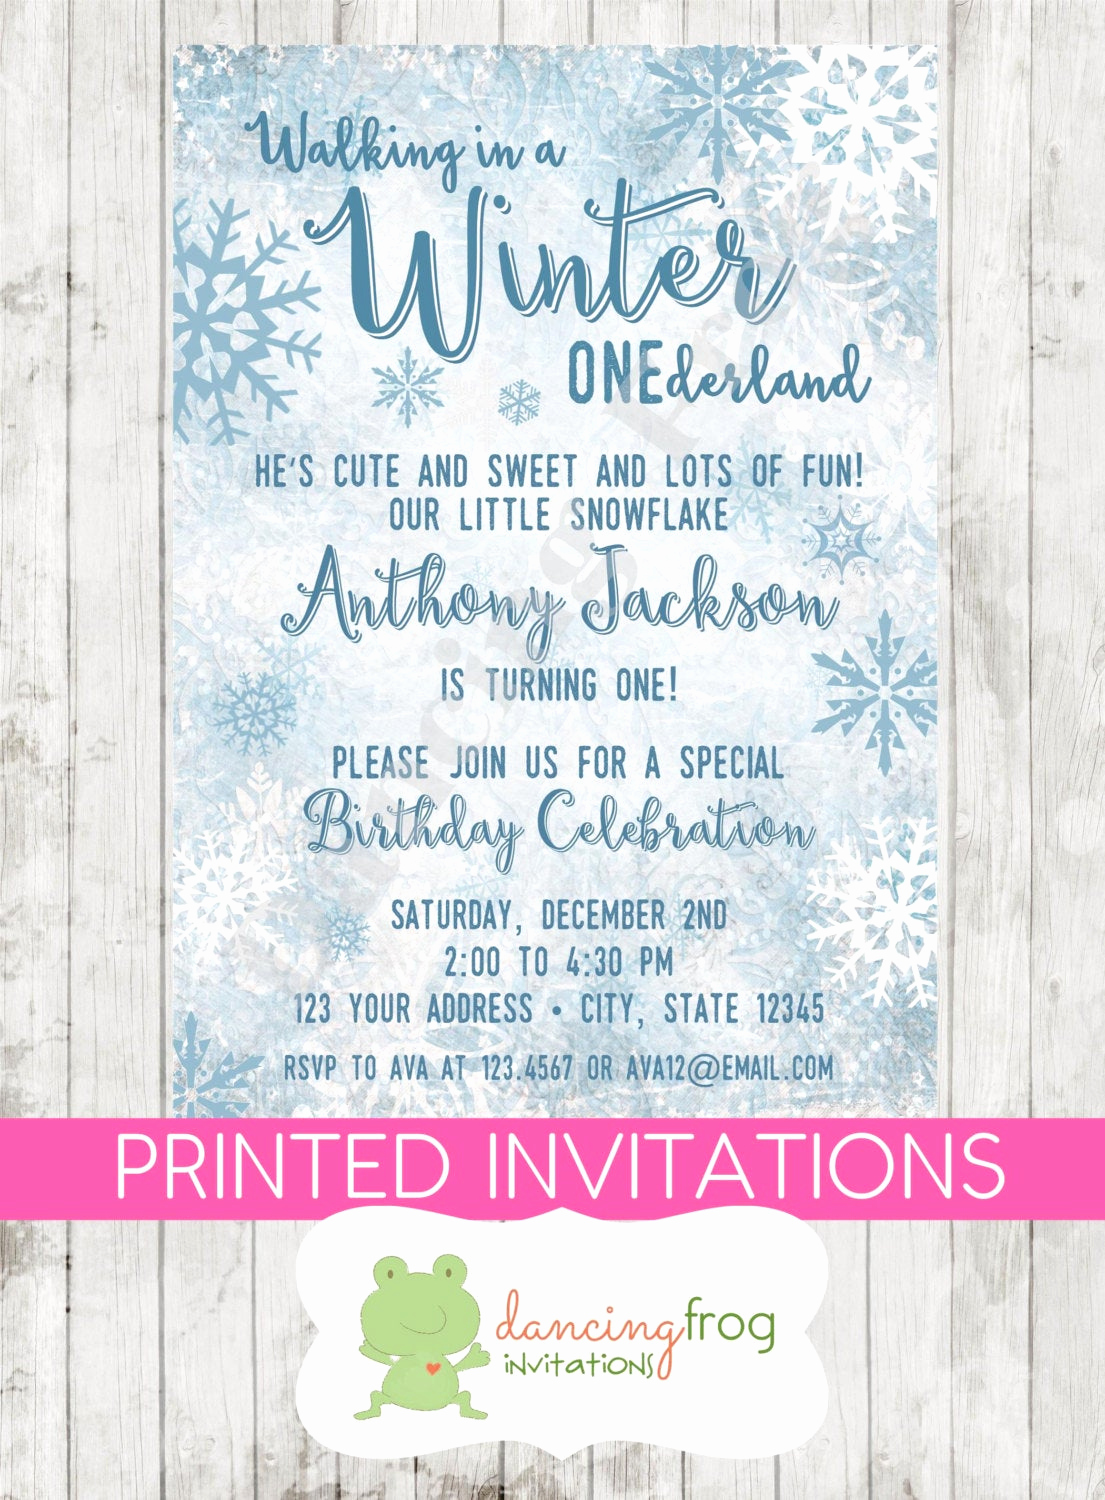 Winter One Derland Invitation Luxury Winter Onederland Birthday Invitation Printed Winter